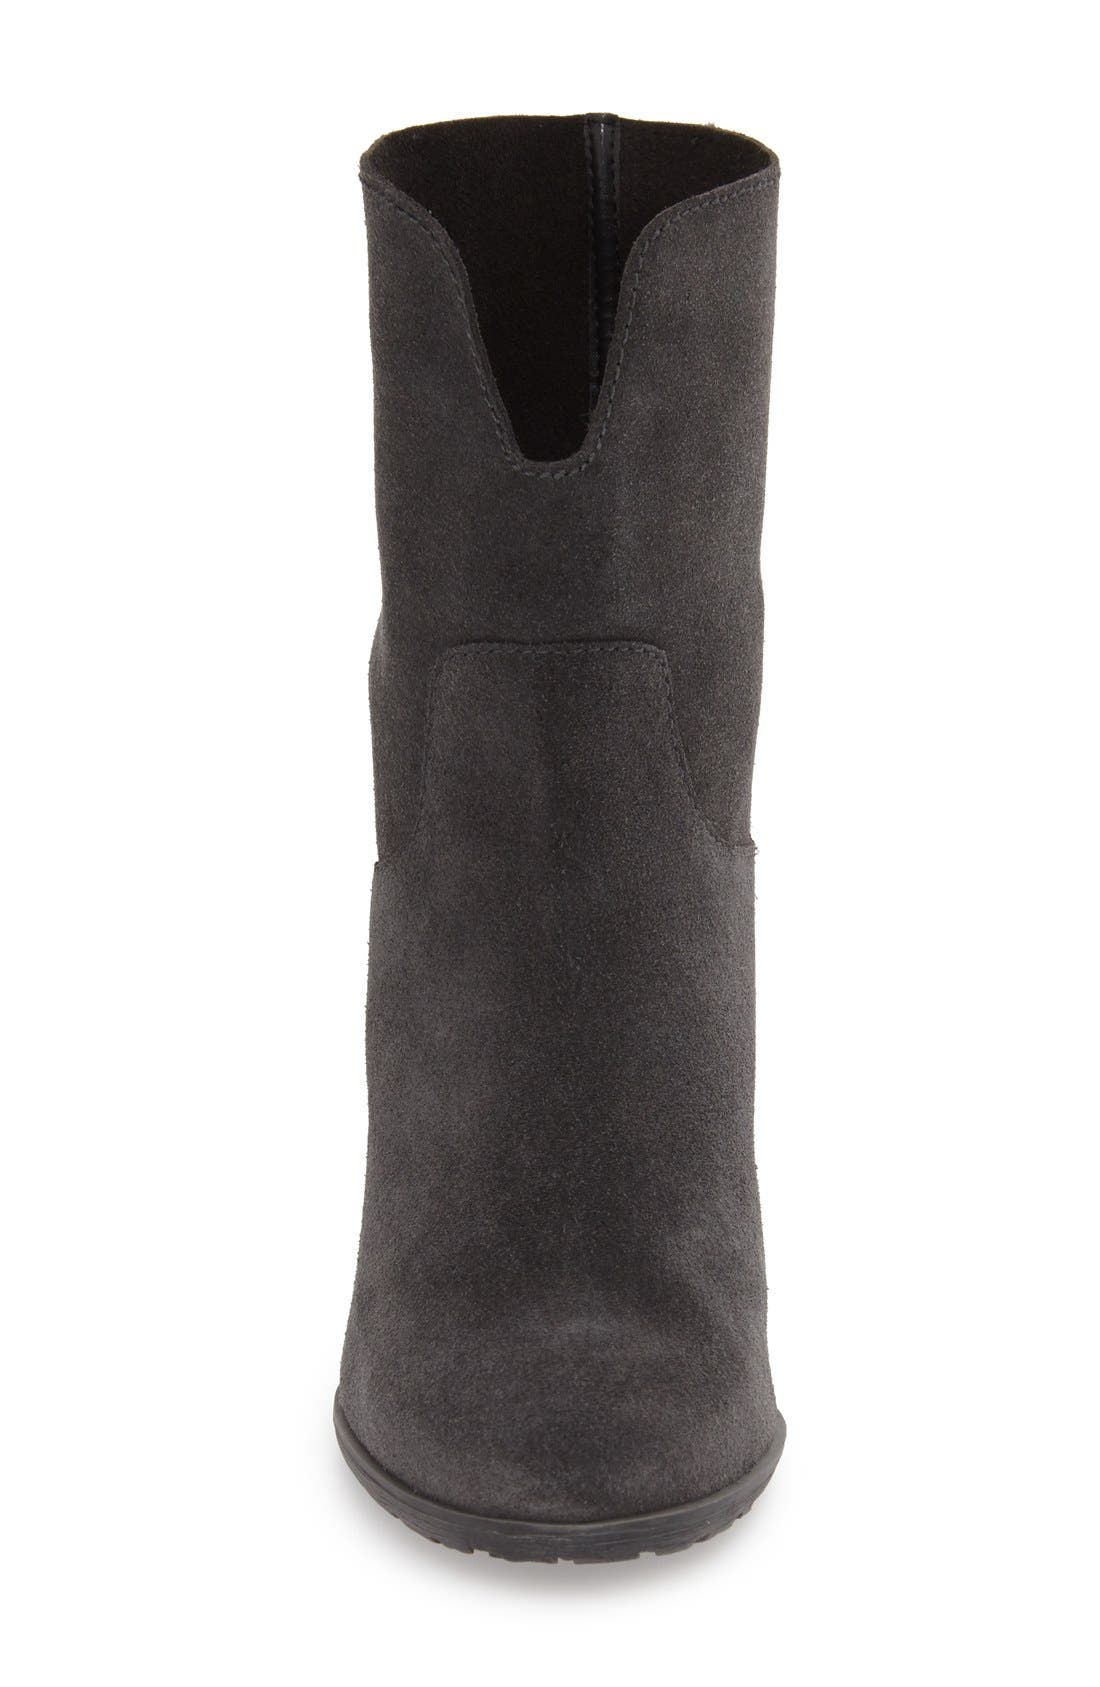 Fay Waterproof Ankle Boot,                             Alternate thumbnail 3, color,                             020